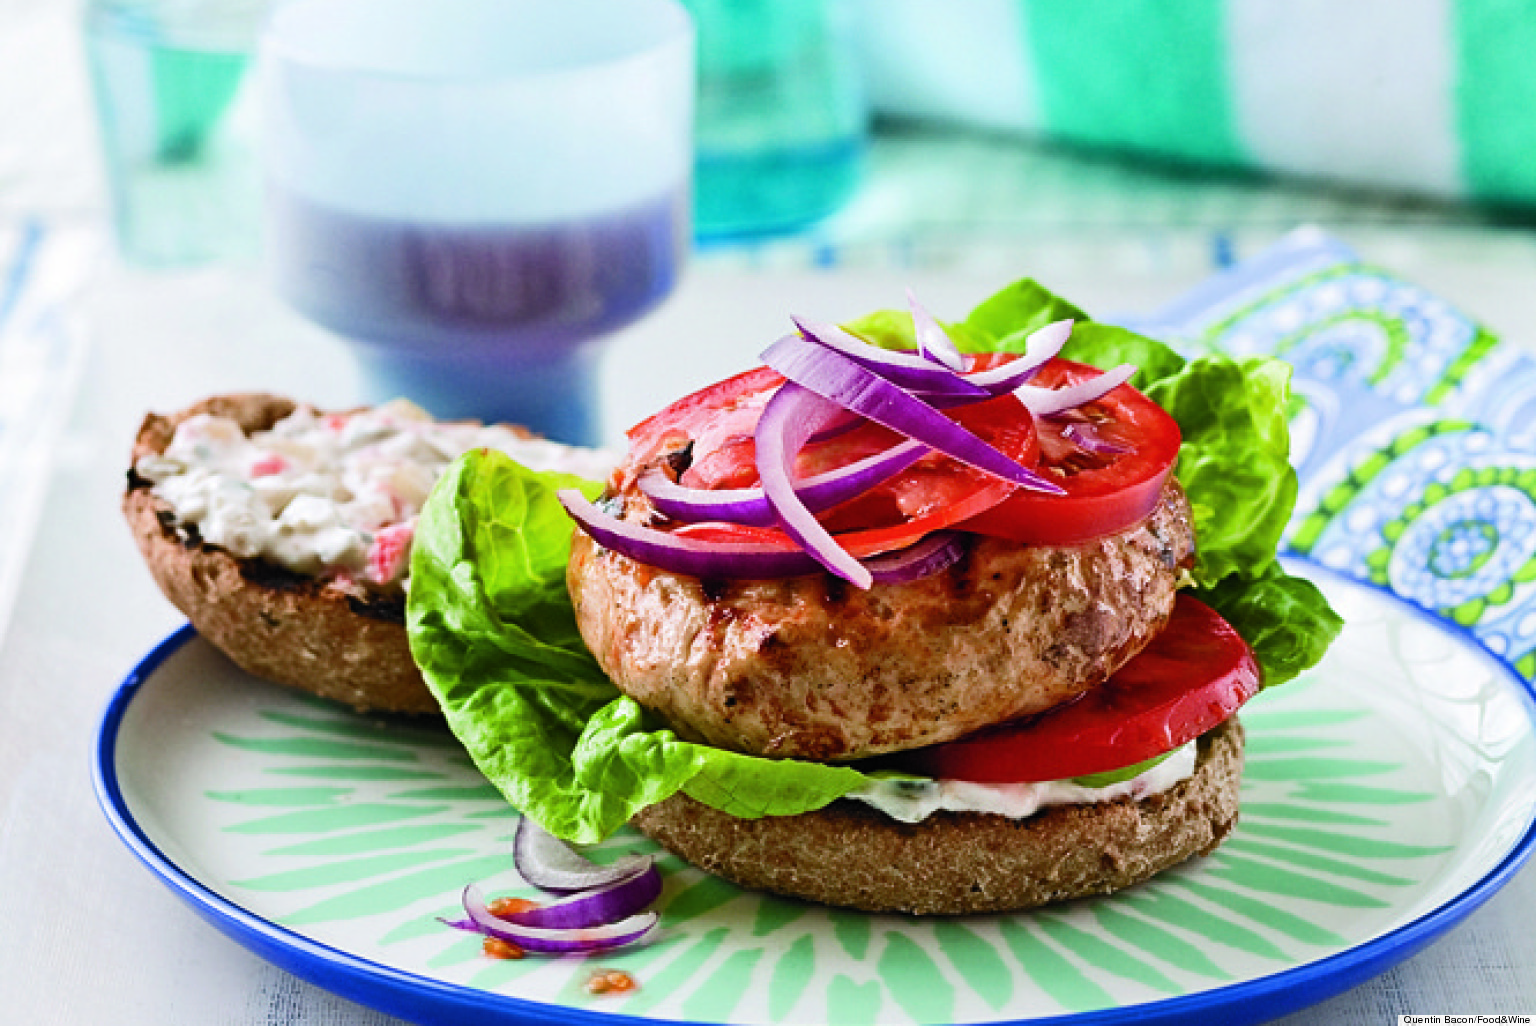 Recipe Of The Day: Turkey Burger